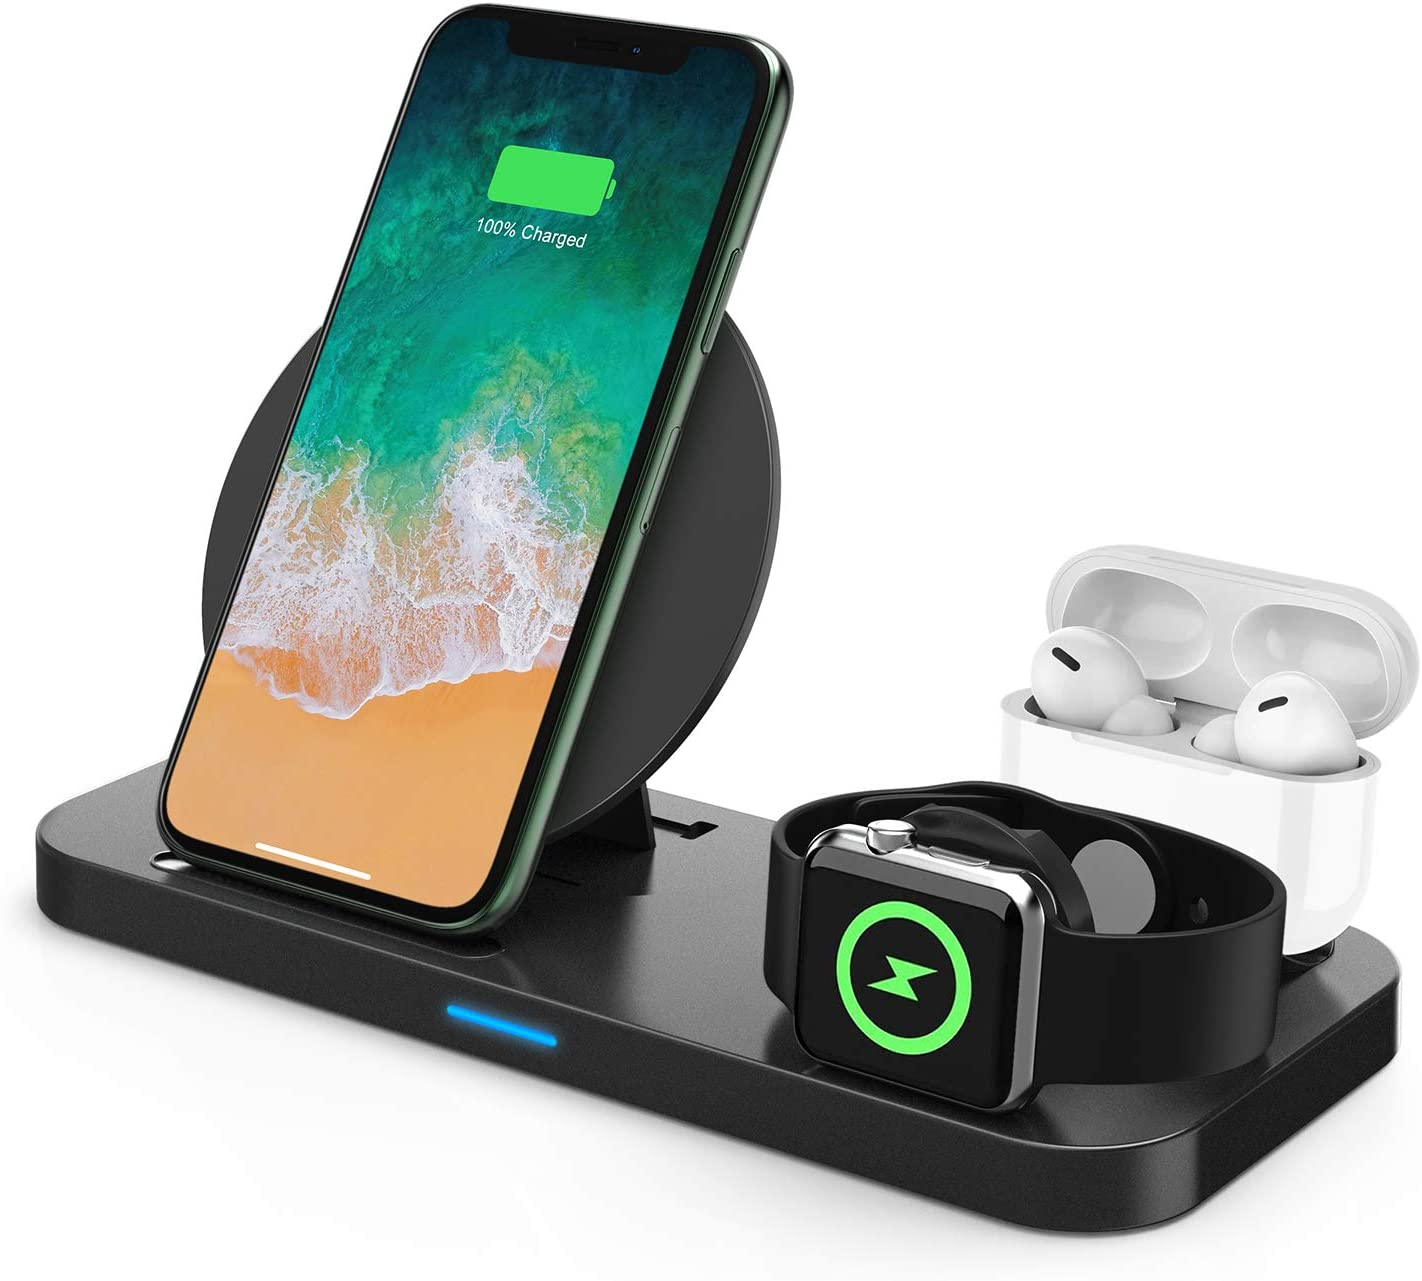 Wireless Charger, 3 in 1 Qi-Certified Wireless Charging Station for AirPods/Apple Watch Series 5/4/3/2/1, Fast Wireless Charging Stand for iPhone 11/11 Pro/11 Pro Max/XS Max/XR/X/Samsung